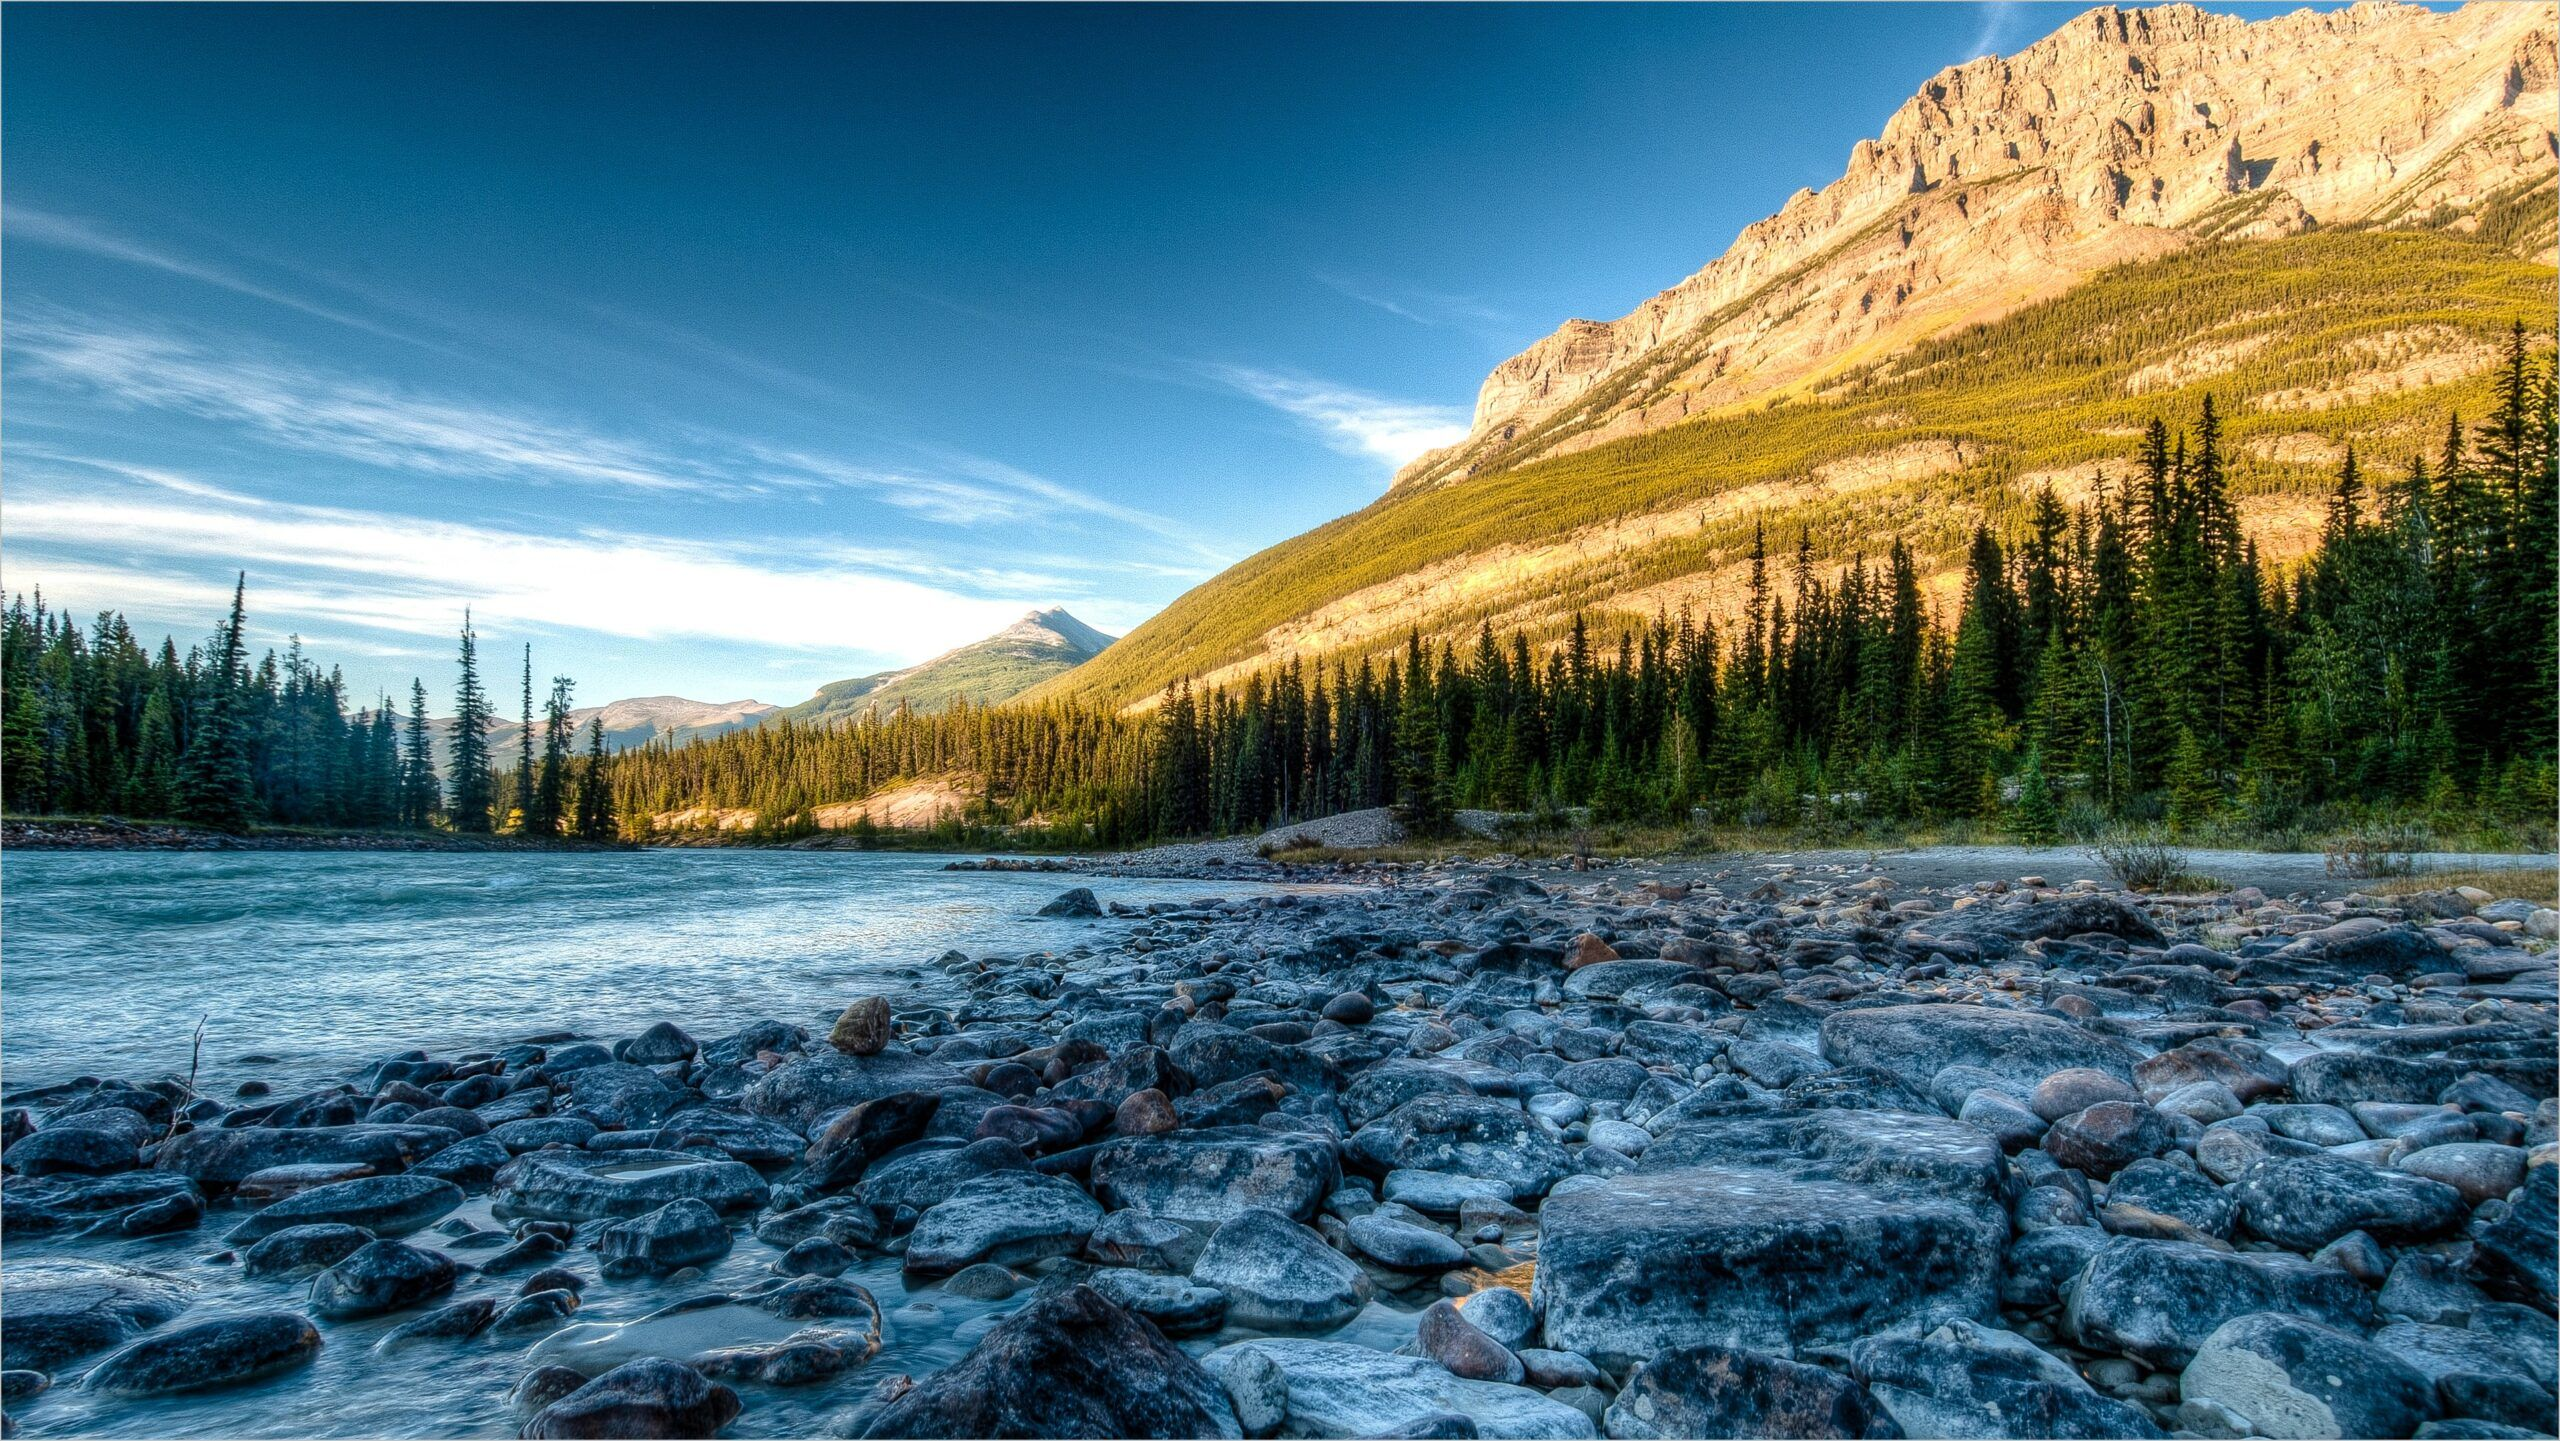 Fall Rocky Mountains Wallpaper 4k in 2020 Trip, National